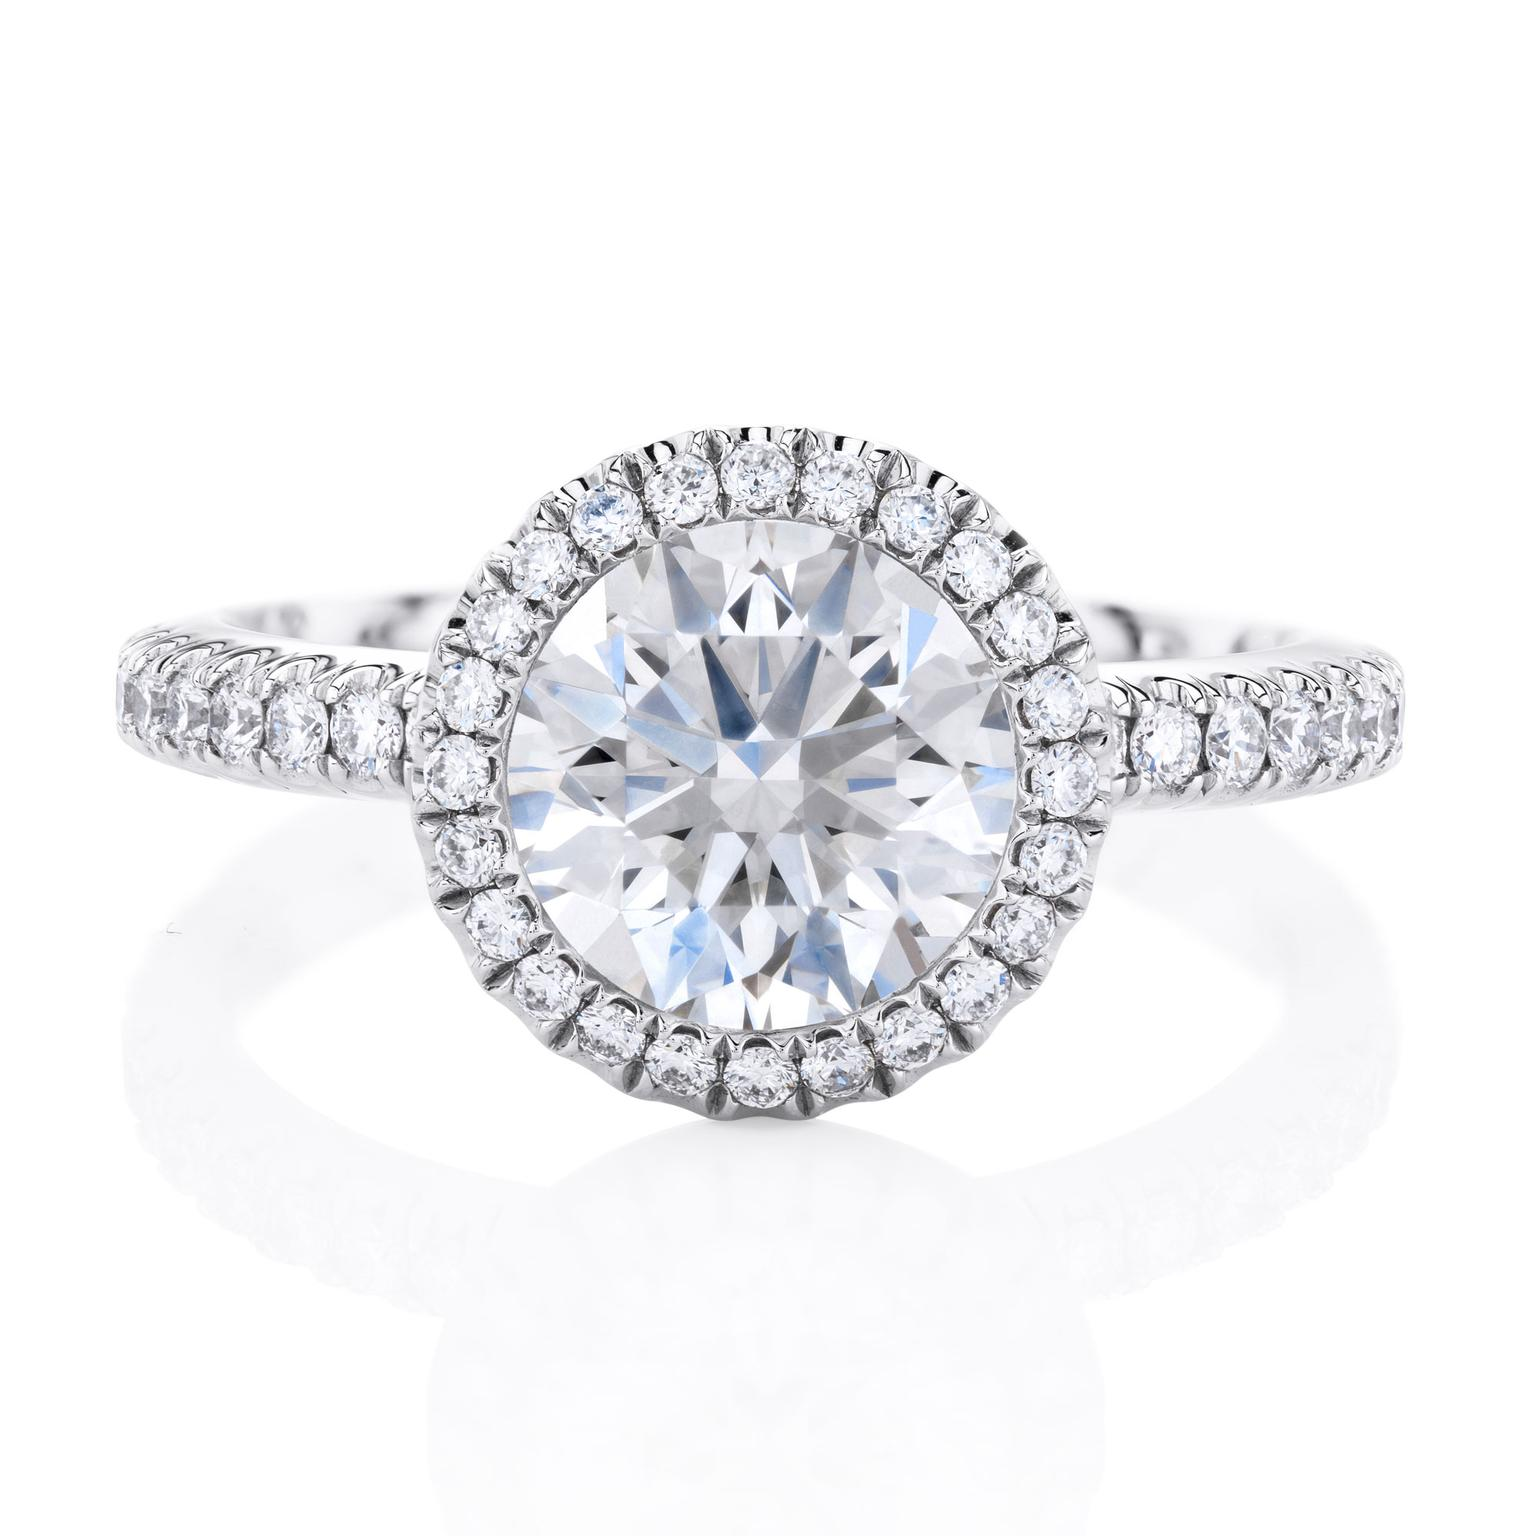 De Beers Aura 1.5ct diamond engagement ring in platinum